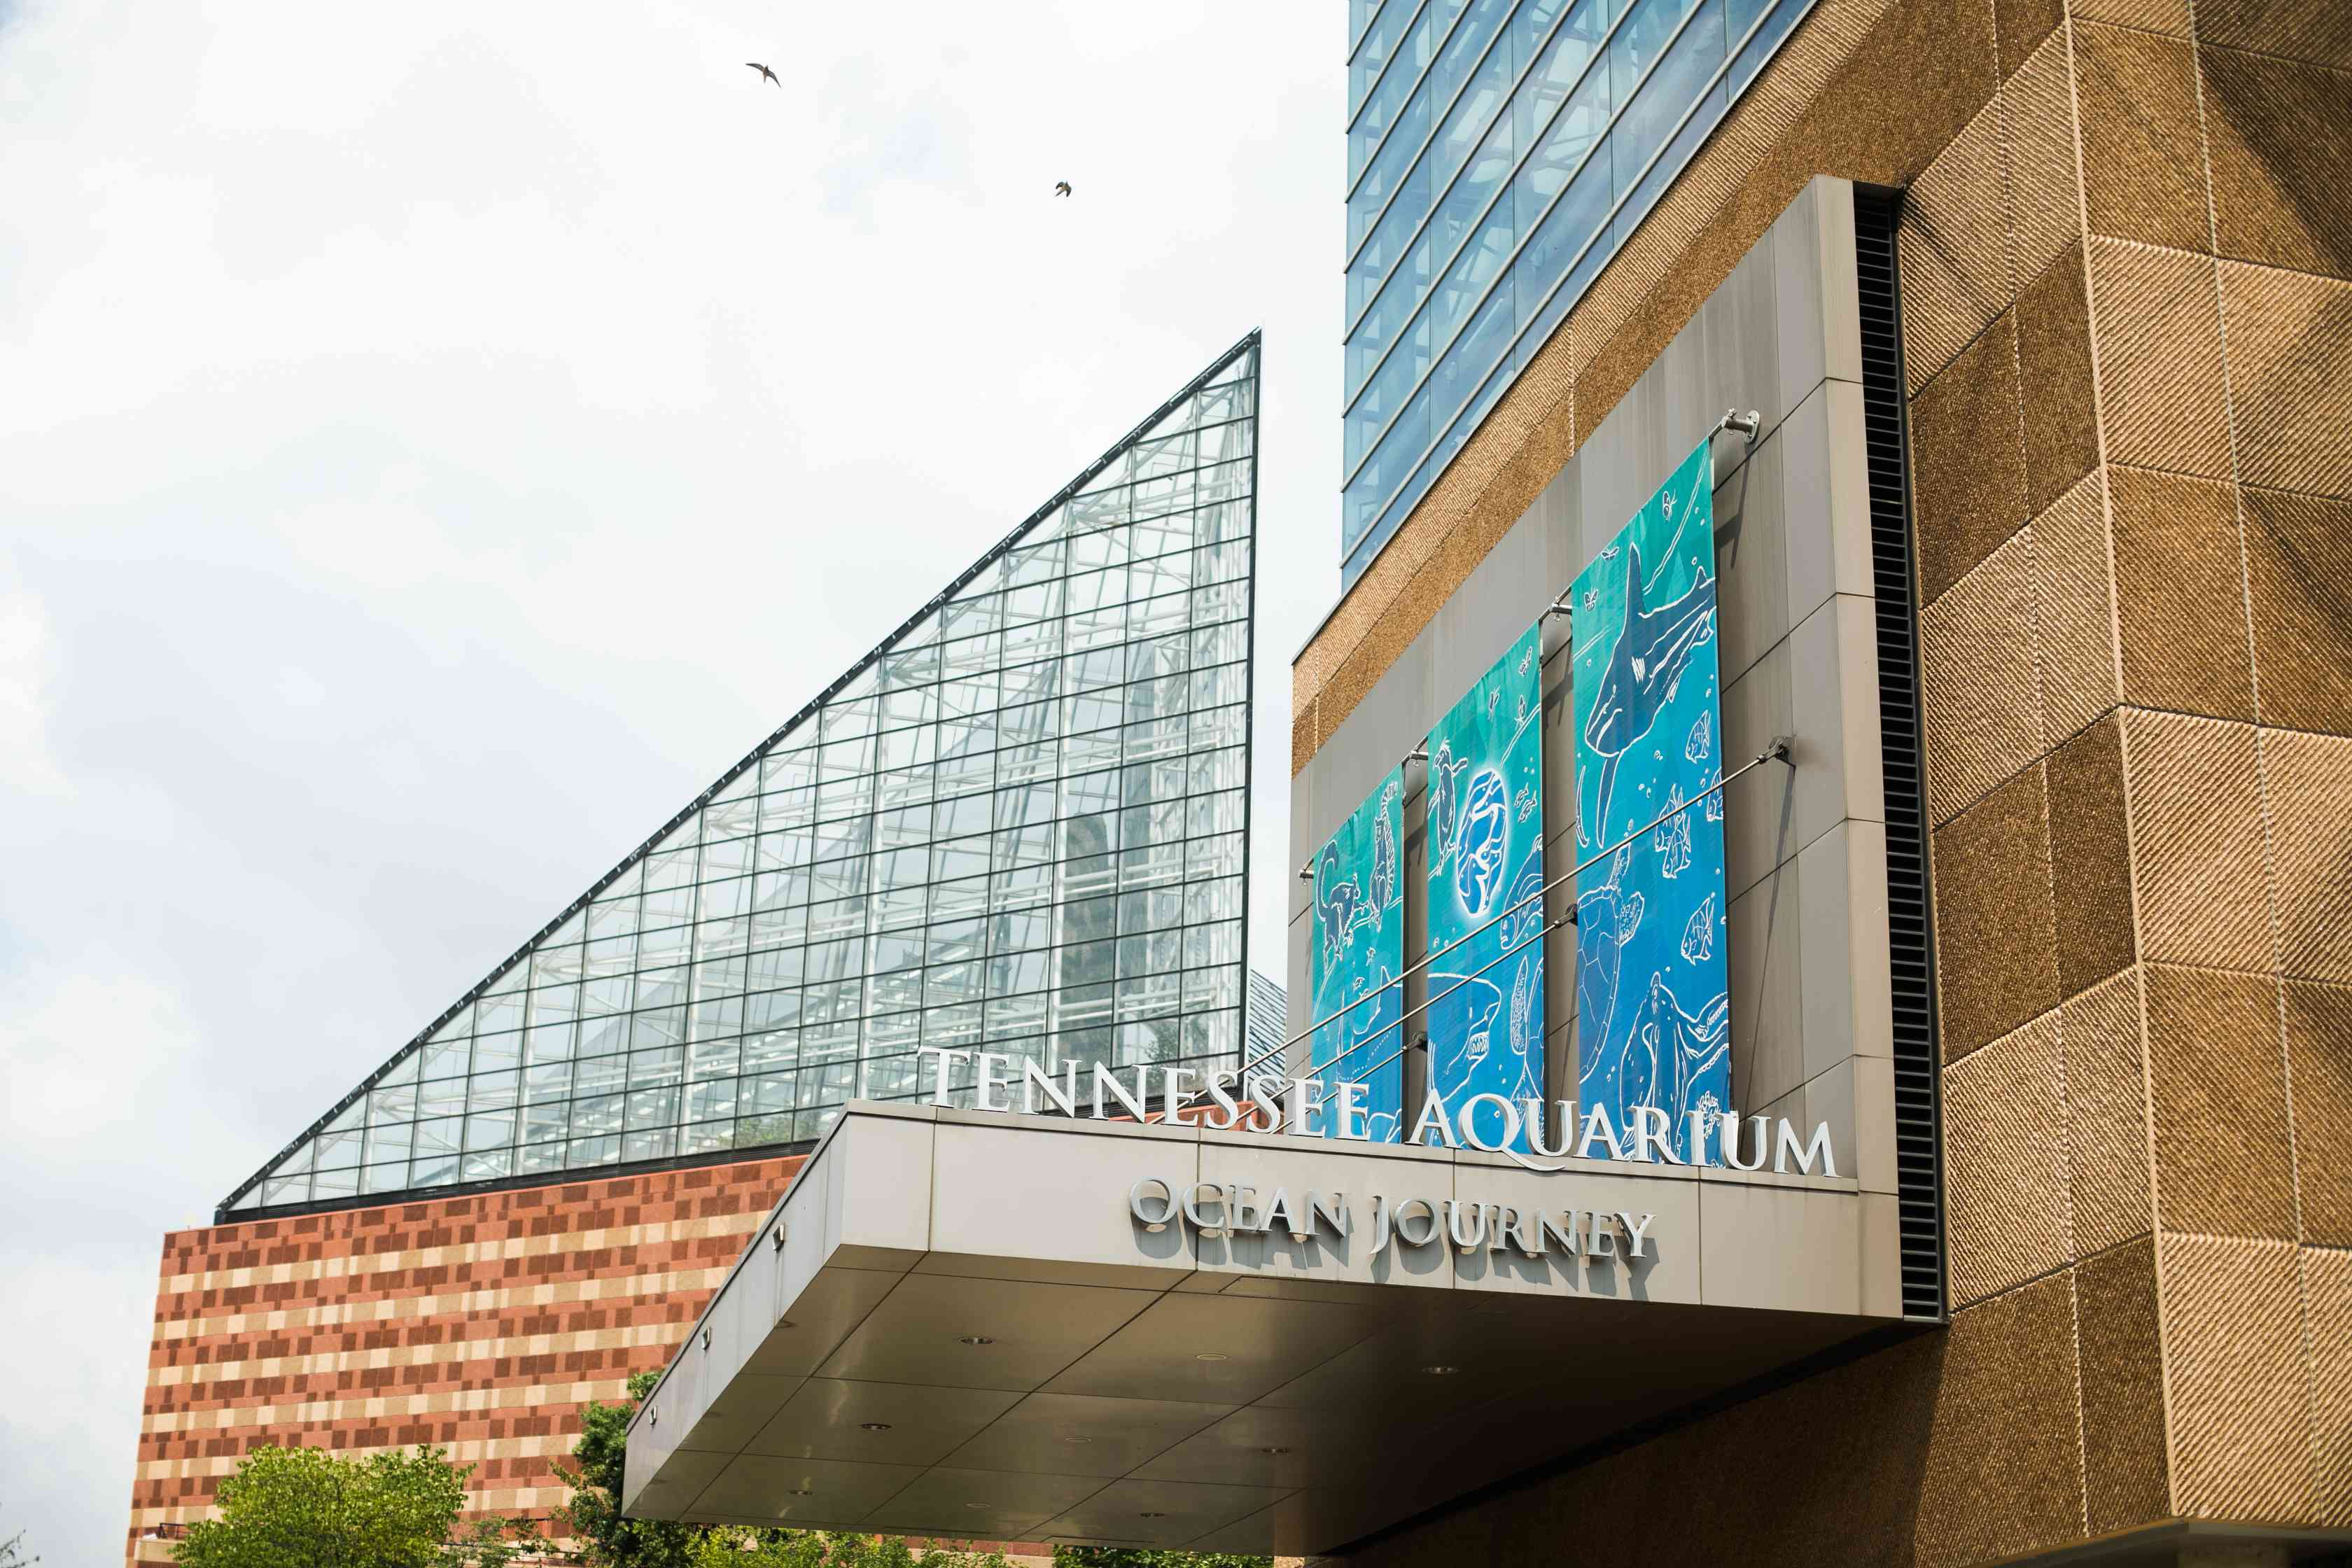 Entrance to the Tennessee Aquarium